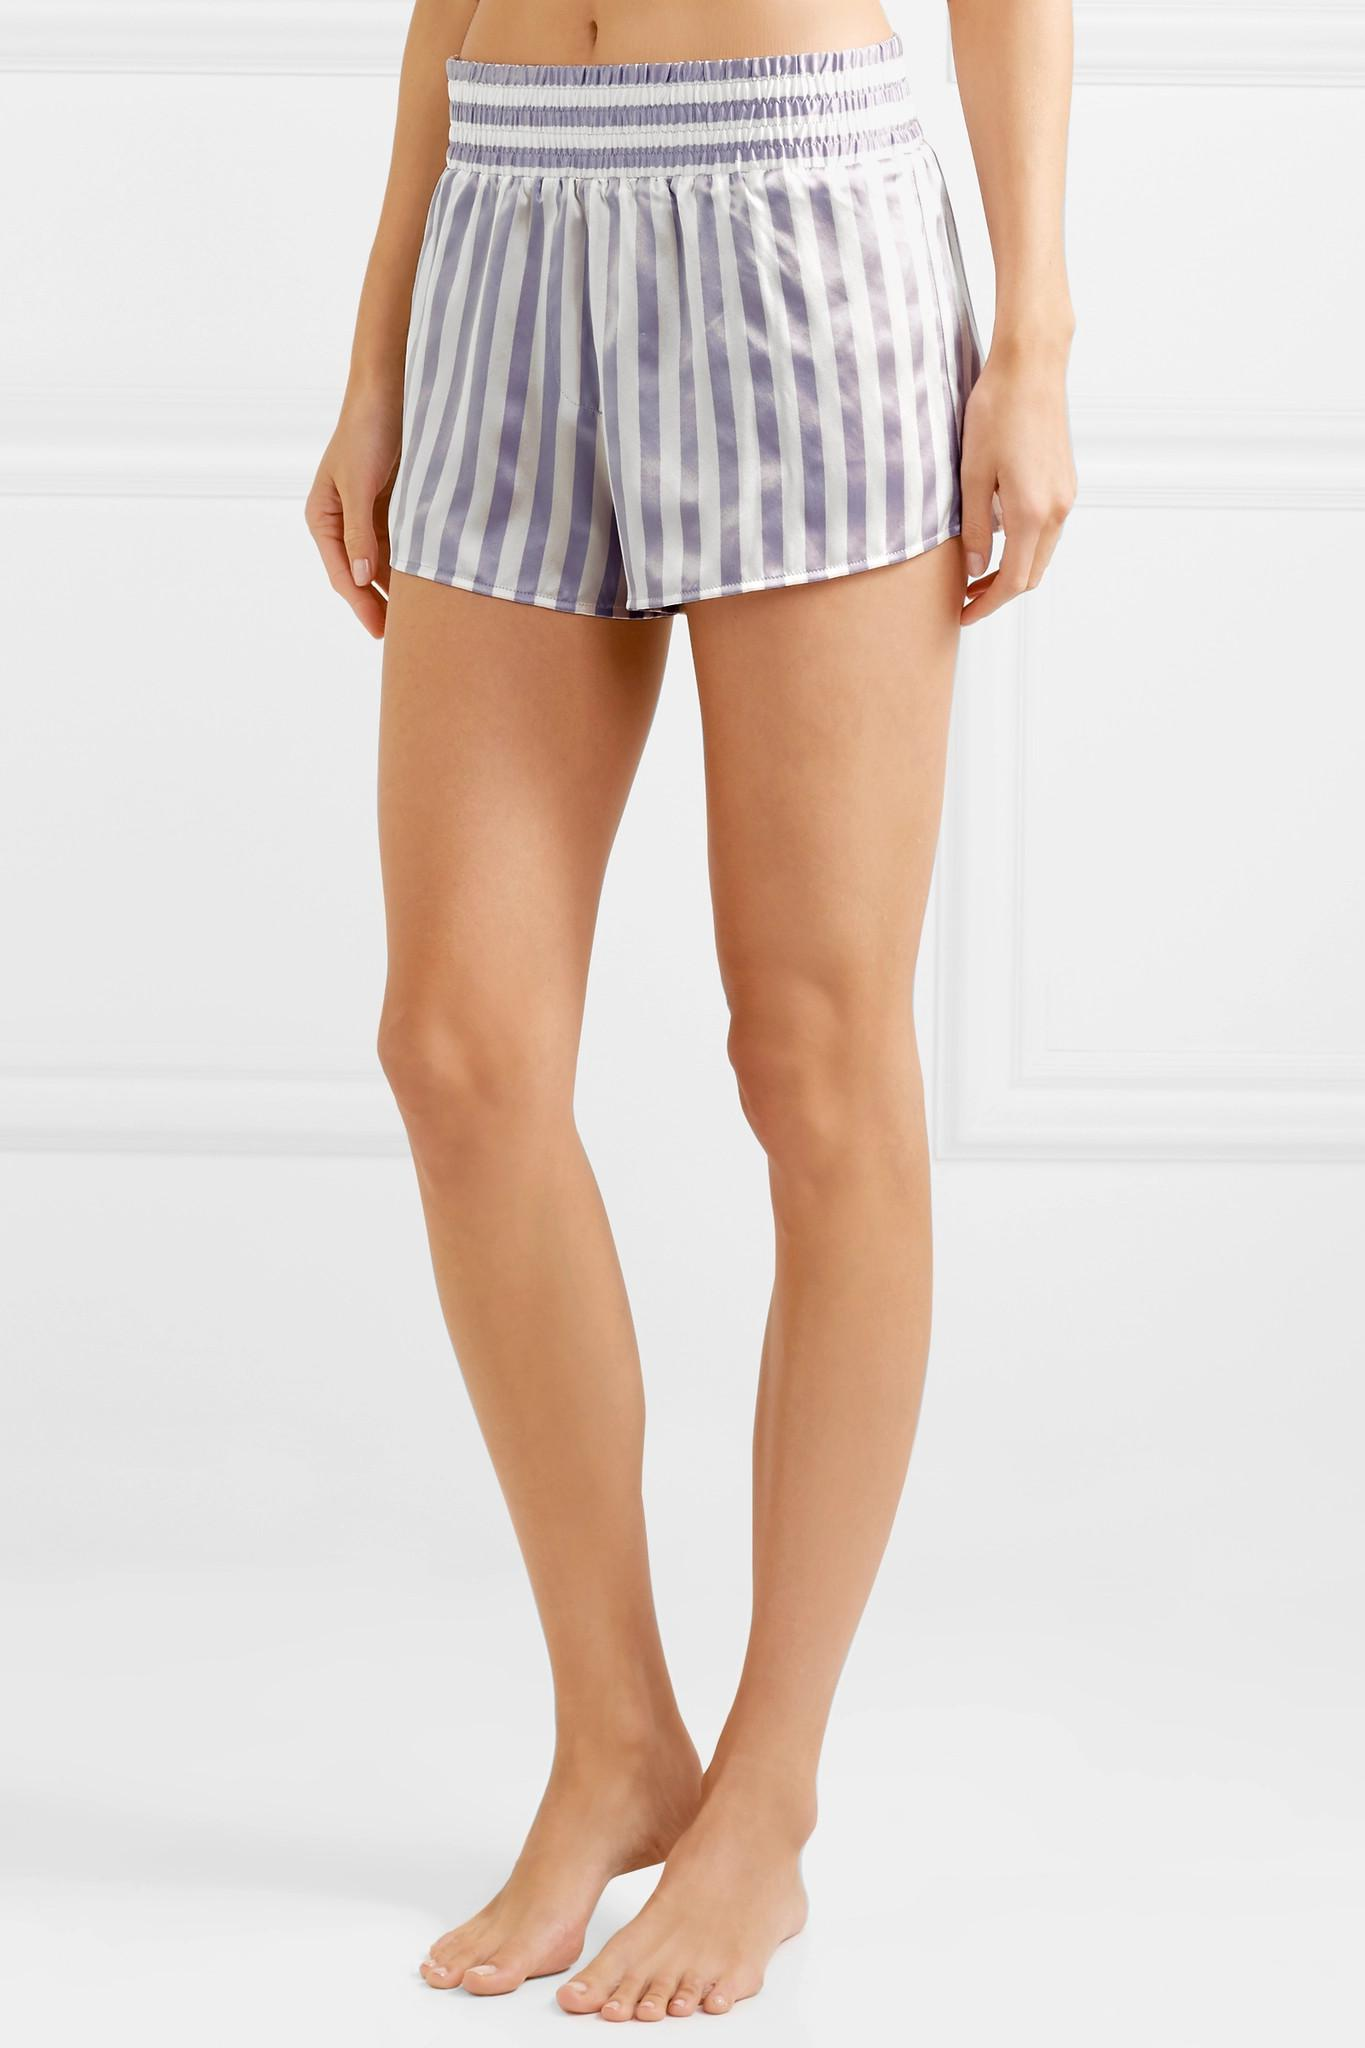 Morgan Lane - Purple Amanda Fatherazi Corey Appliquéd Striped Silk-charmeuse  Pajama Shorts - Lyst. View fullscreen 51bb2780f